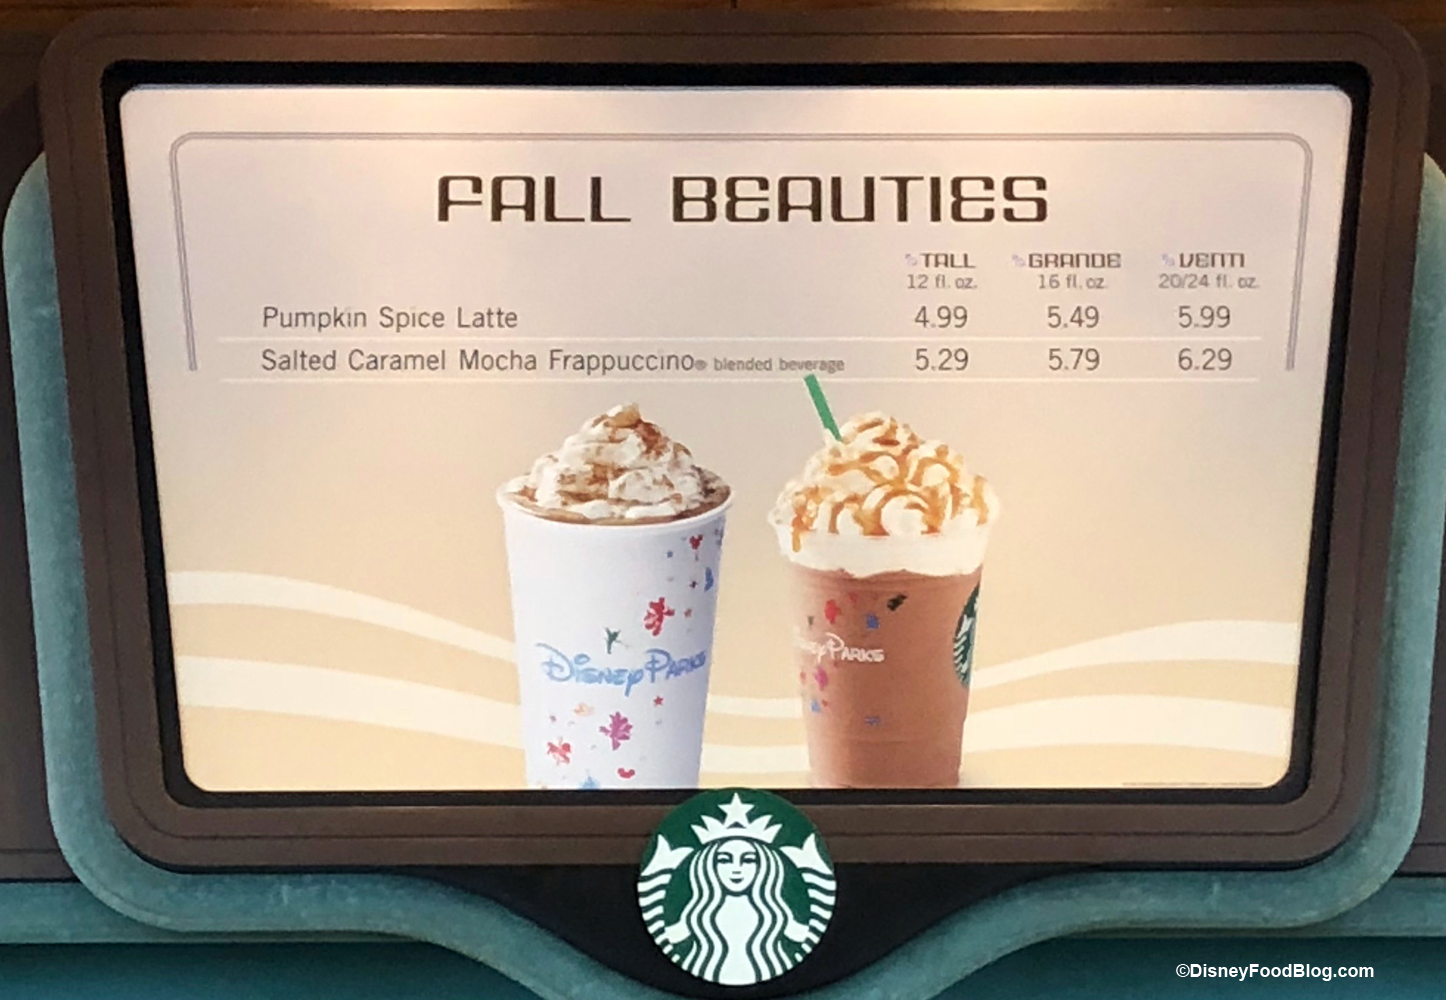 dfe00aa61780 We could choose from some of the Fall Drinks we ve seen in all the  Starbucks locations in the parks – Pumpkin Spice Latte and Salted Caramel  Mocha ...